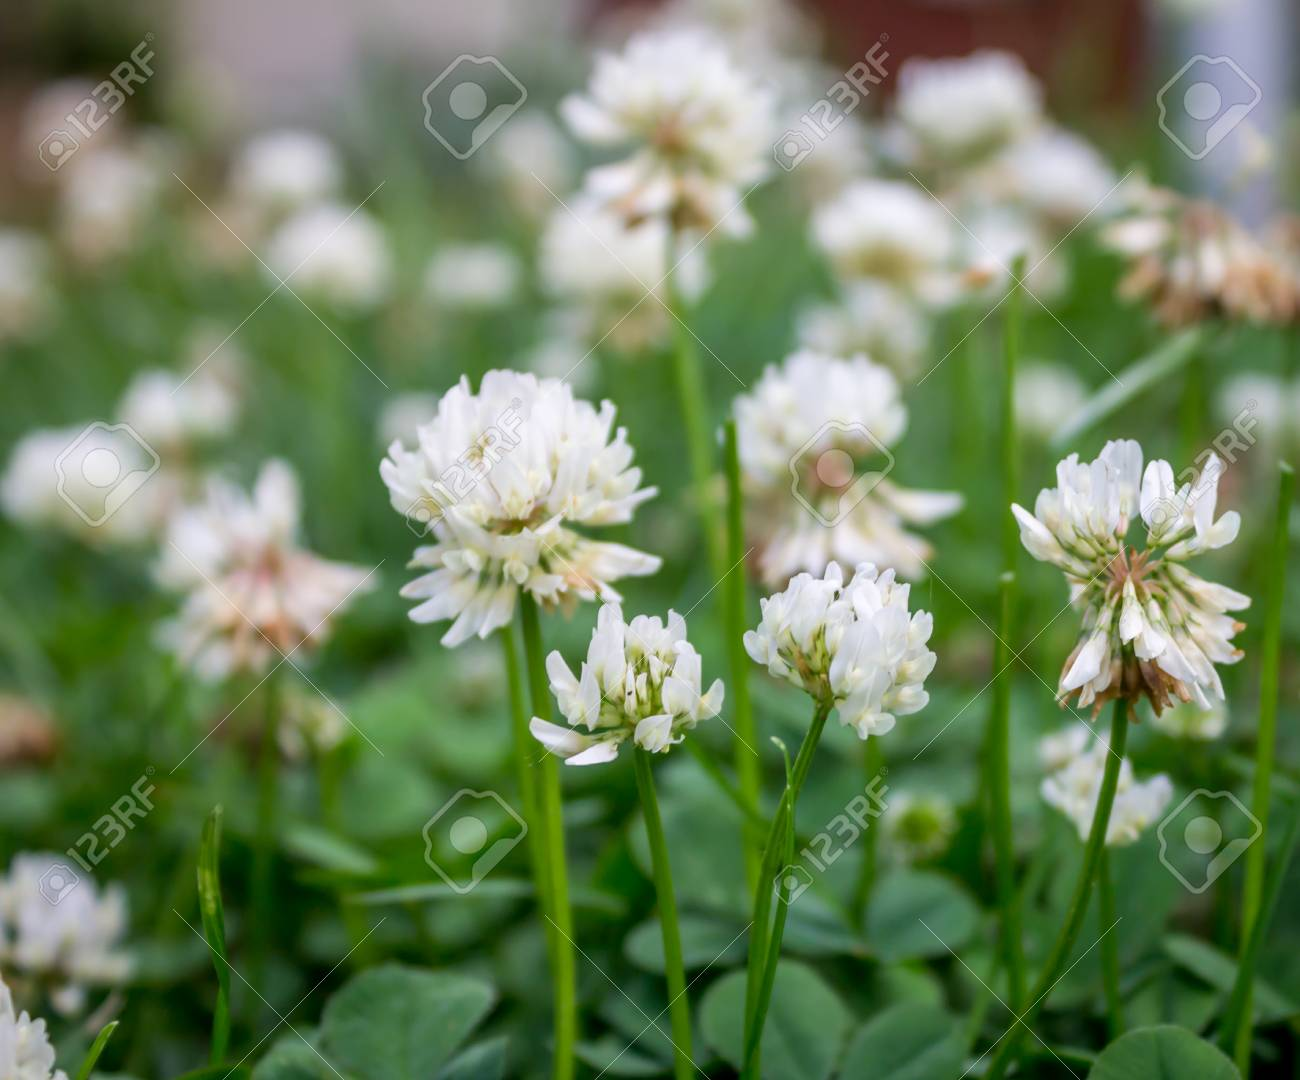 White clover flowers from life to death stock photo picture and stock photo white clover flowers from life to death mightylinksfo